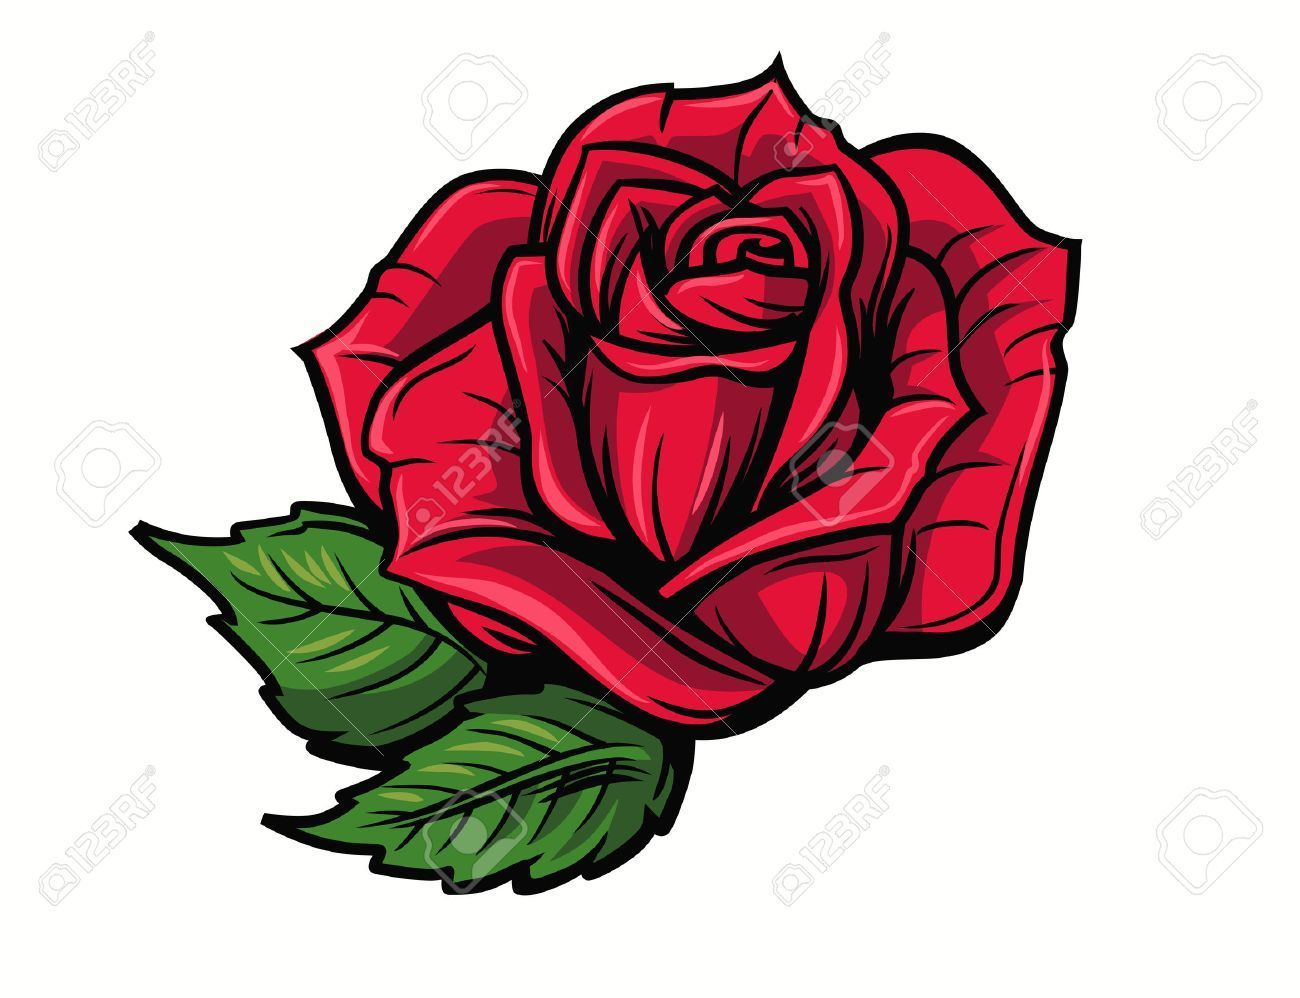 1300x998 Rose Flower Cartoon Clip Art Free Vector And Clipart Ideas In Rose